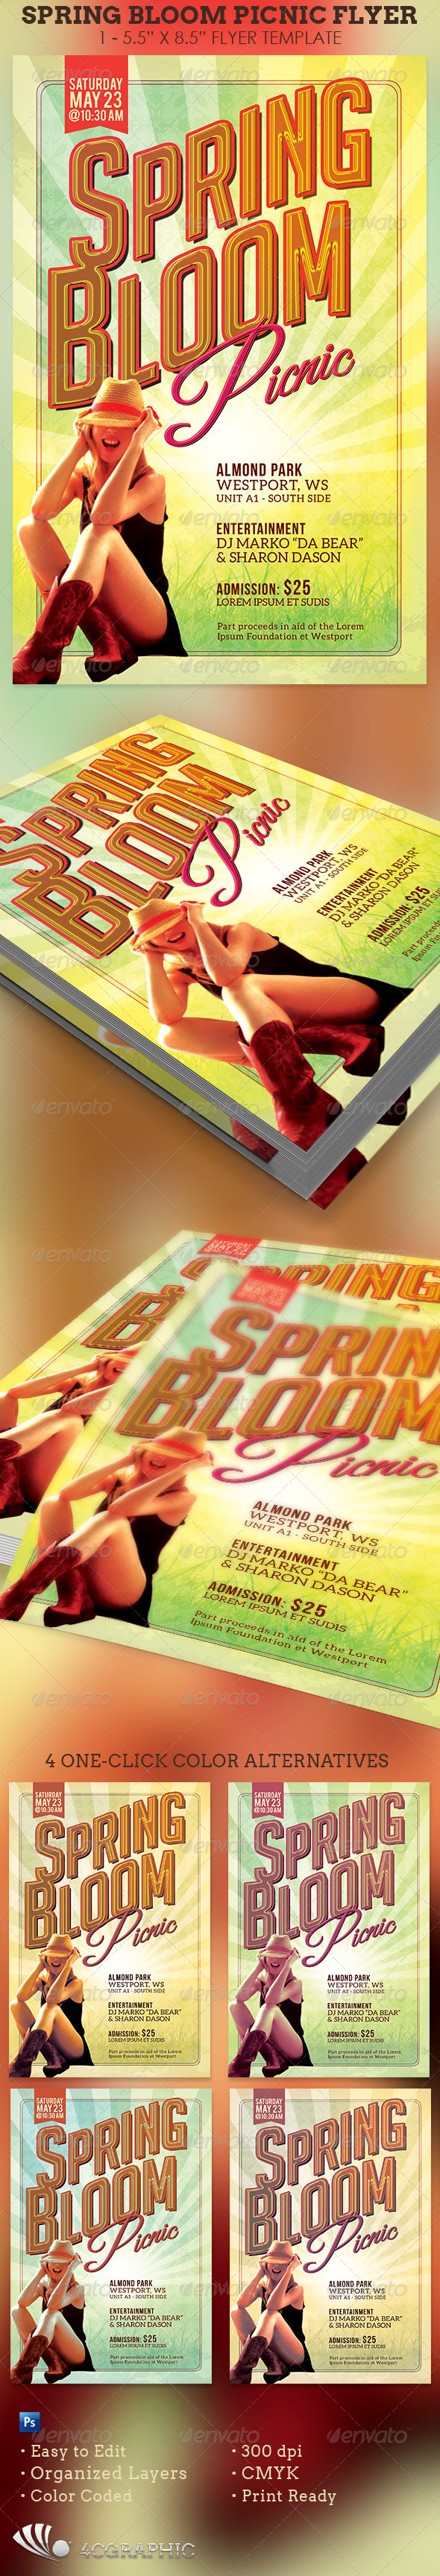 Spring Bloom Picnic Flyer Template - Events Flyers